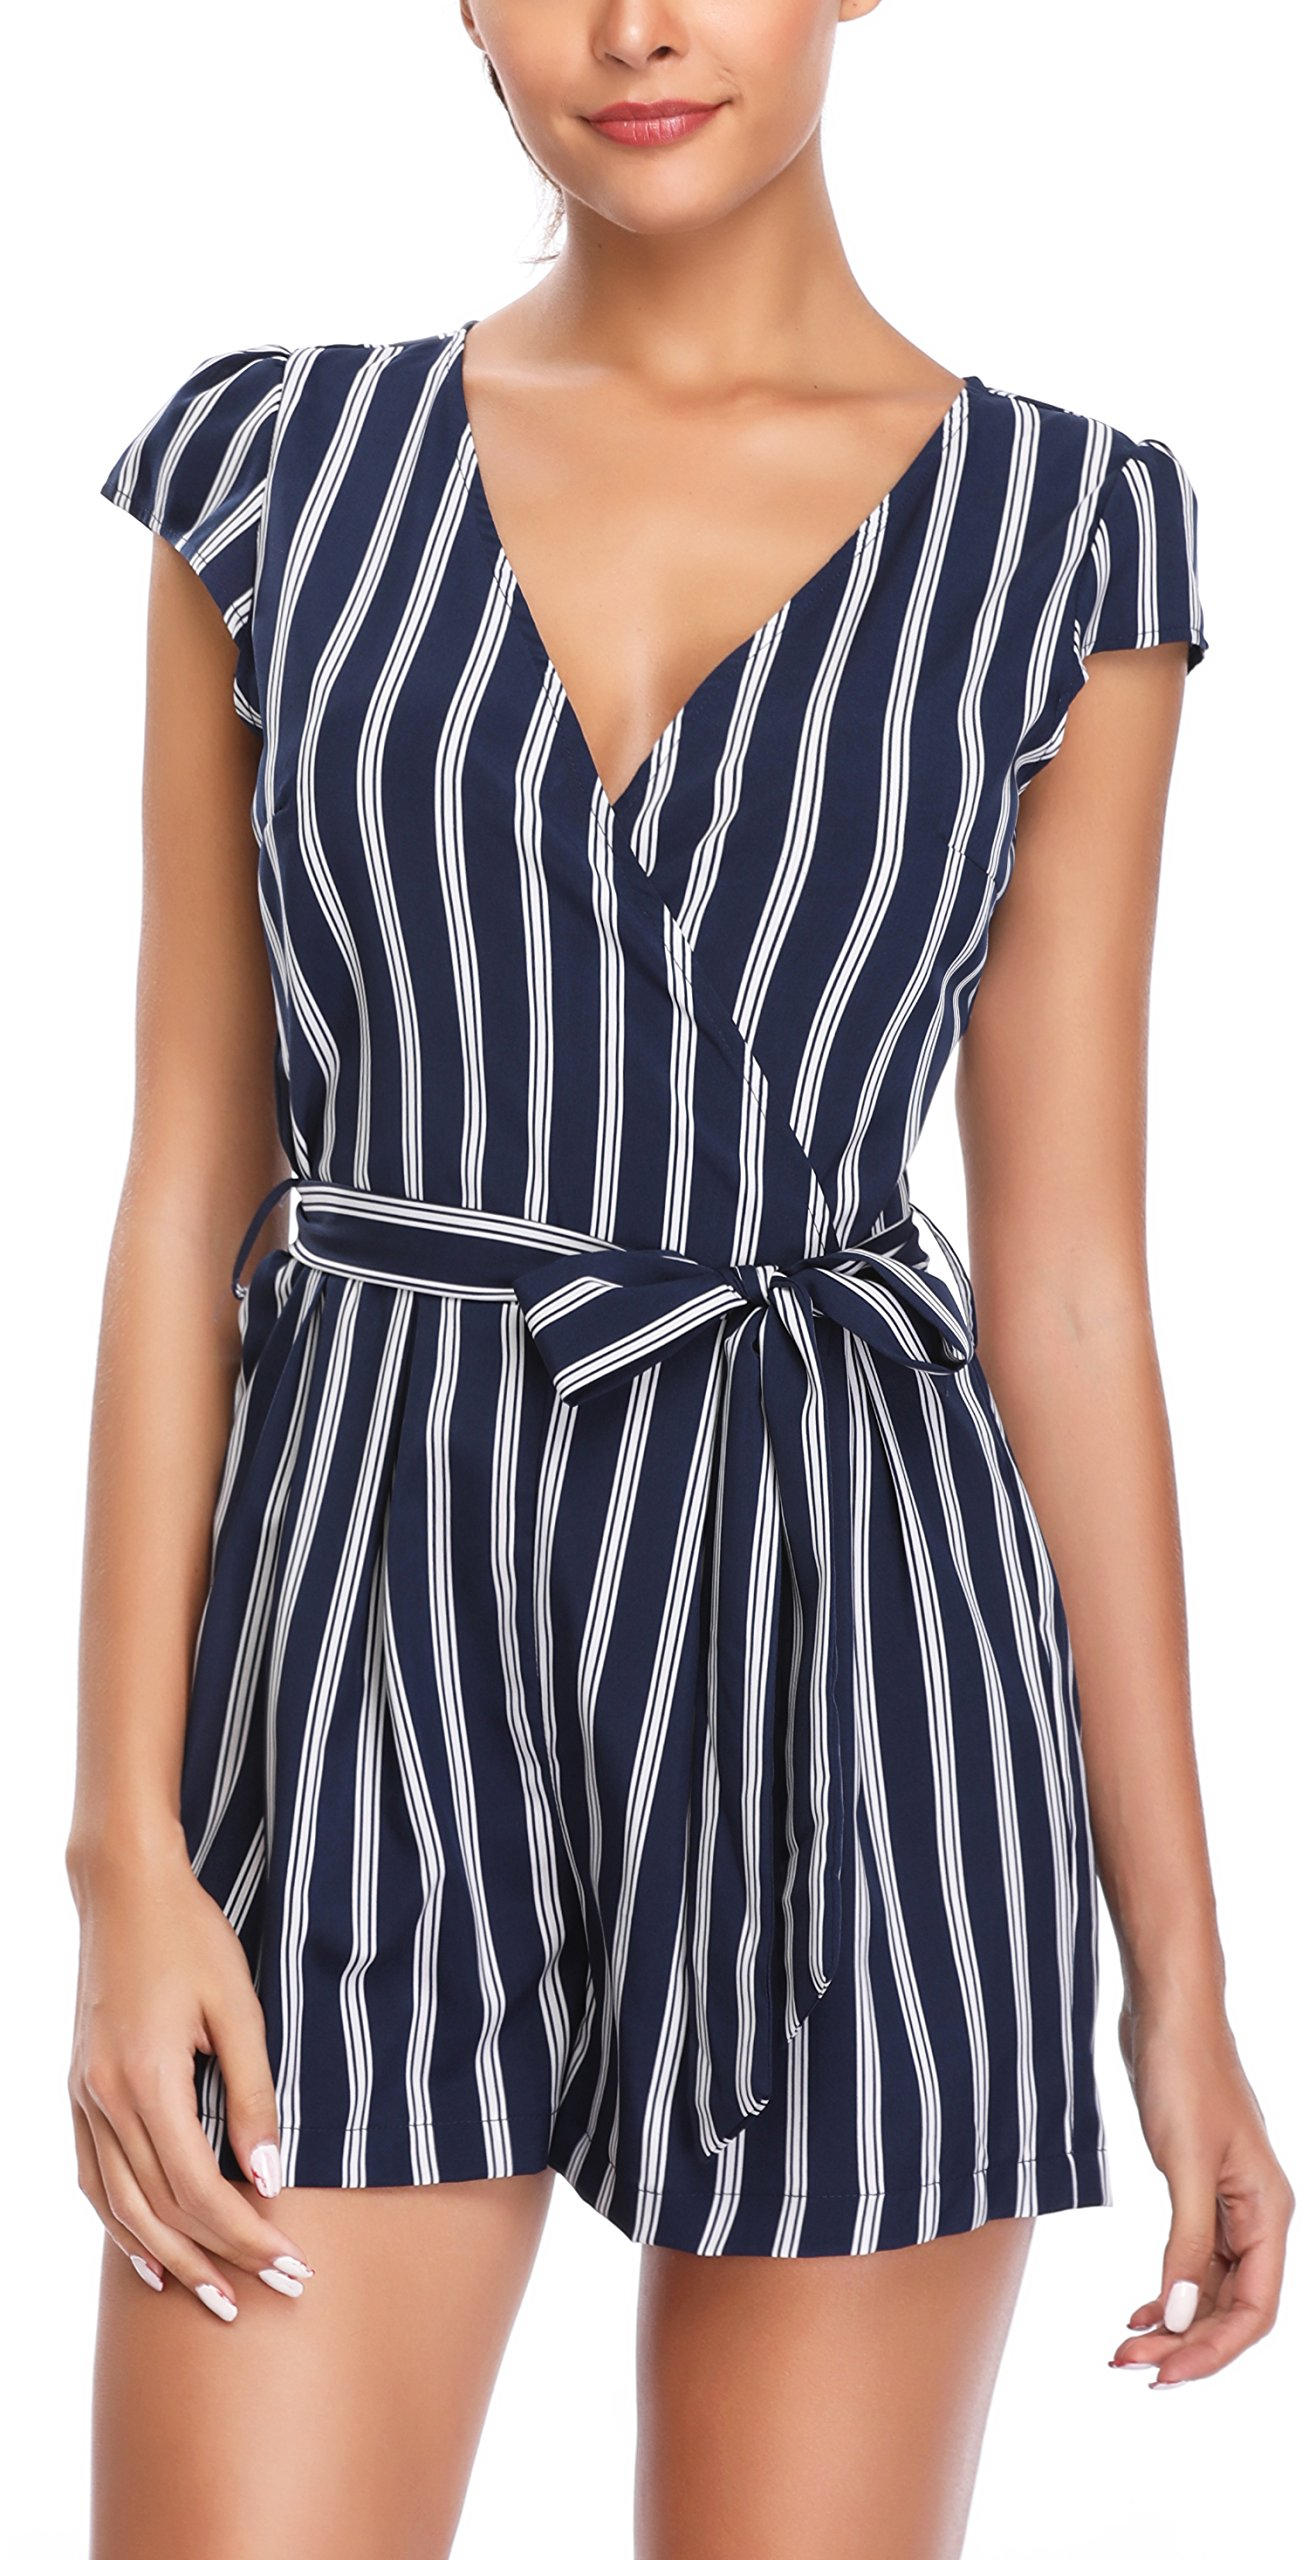 MISS MOLY Rompers and Jumpsuits for Women Vertical Deep V Neck Striped Cap Sleeve Cute Summer Playsuits with Belt Blue S